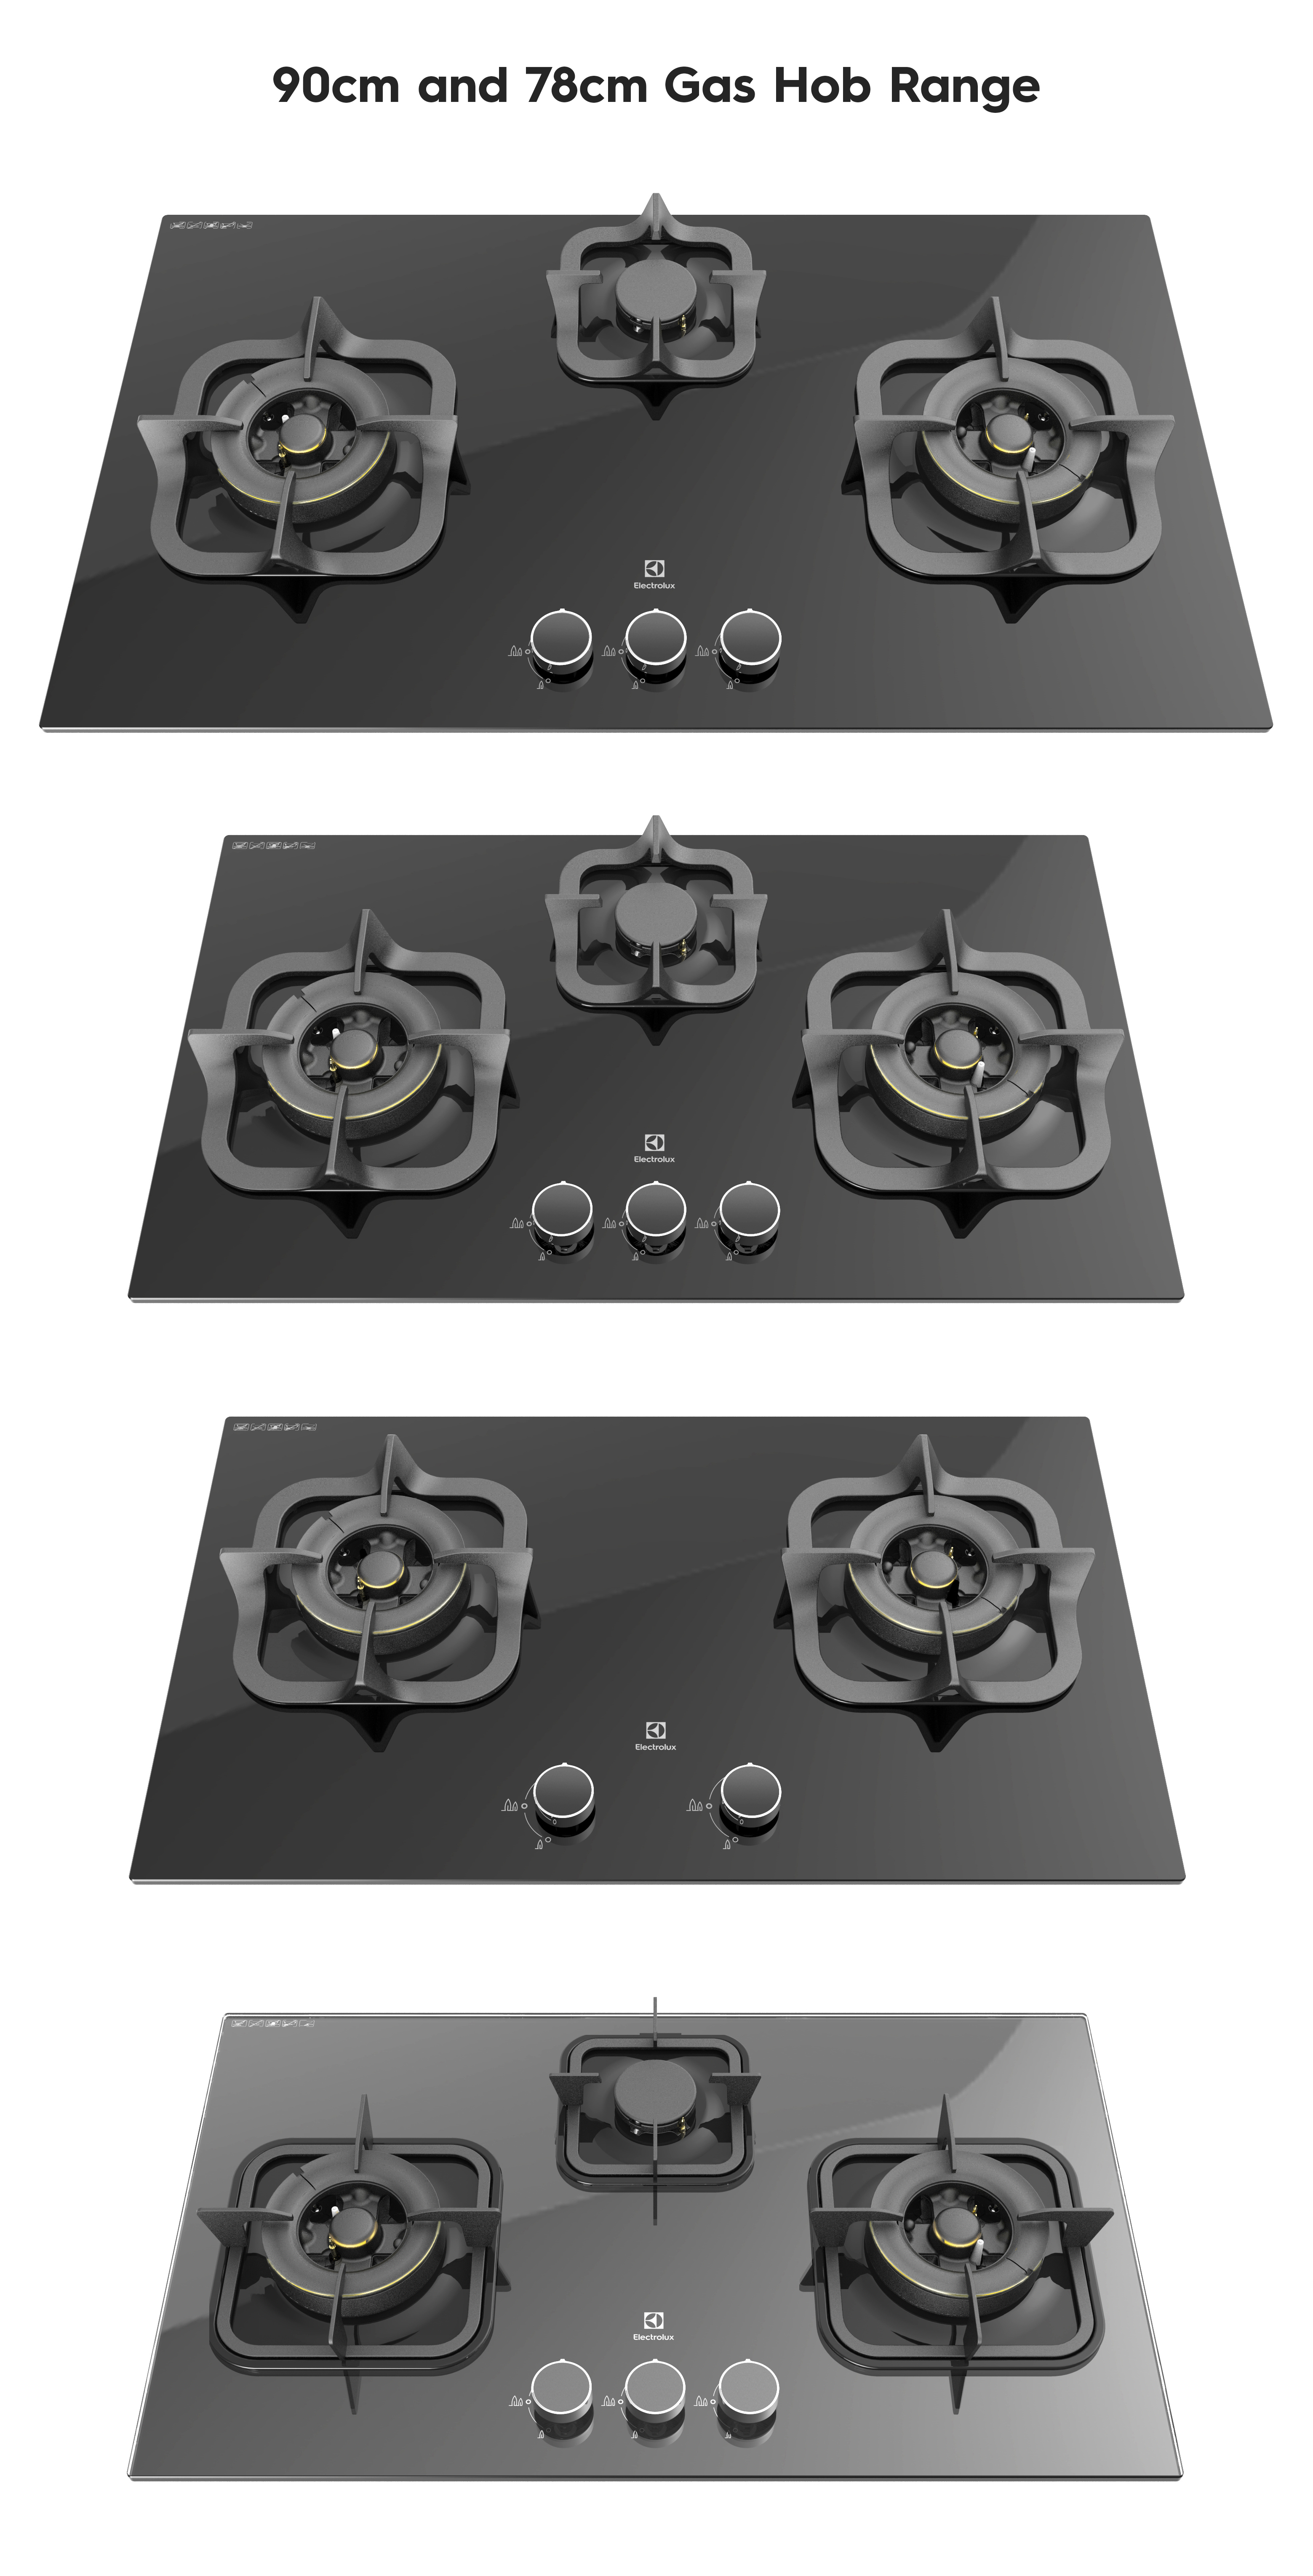 Electrolux Gas Cooktop